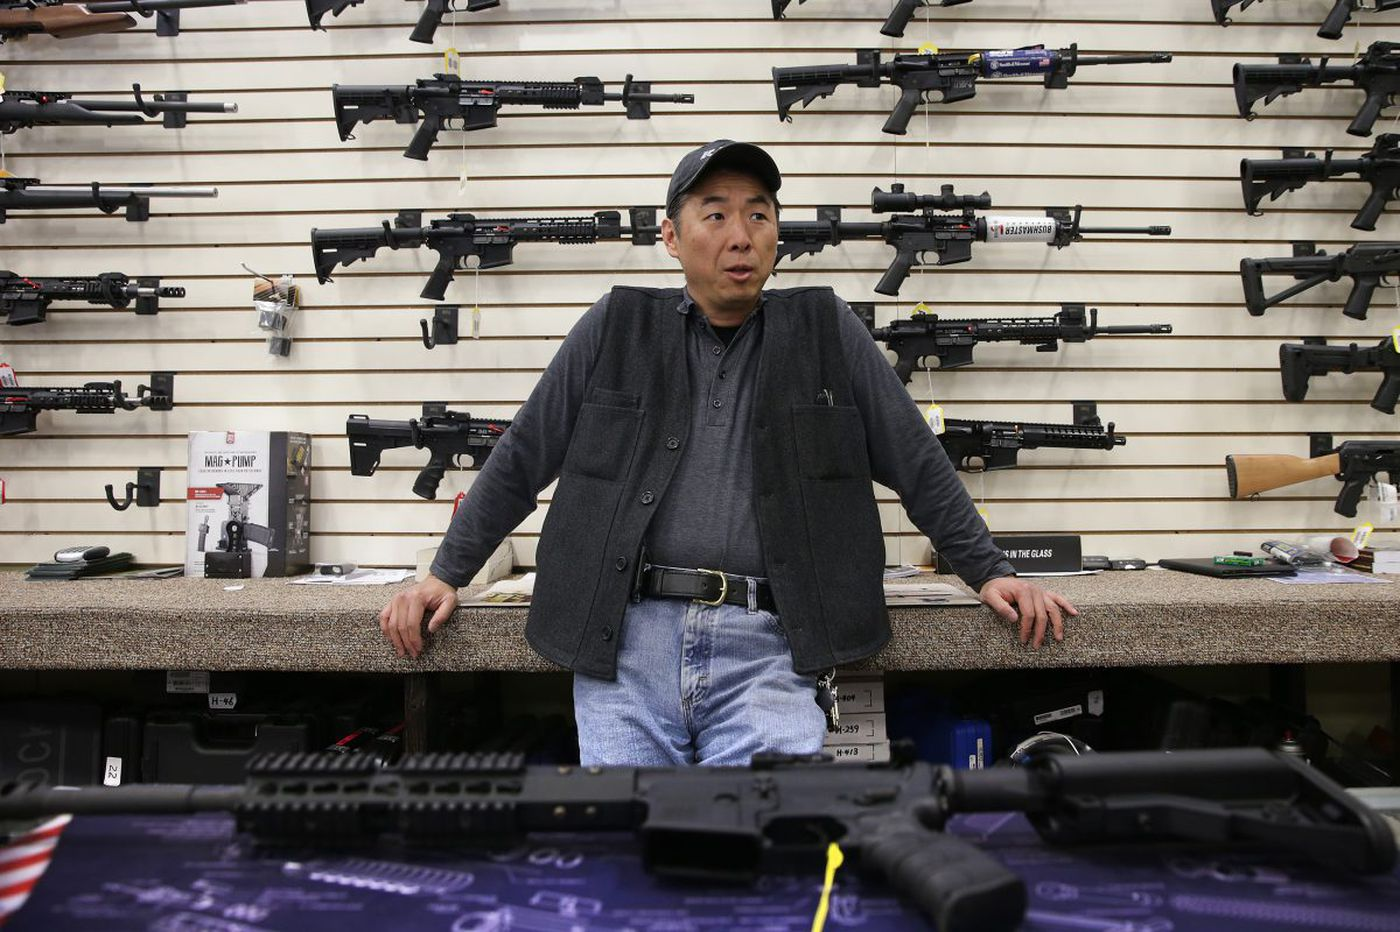 Poconos gunmaker's vision: An AR-15 for every American